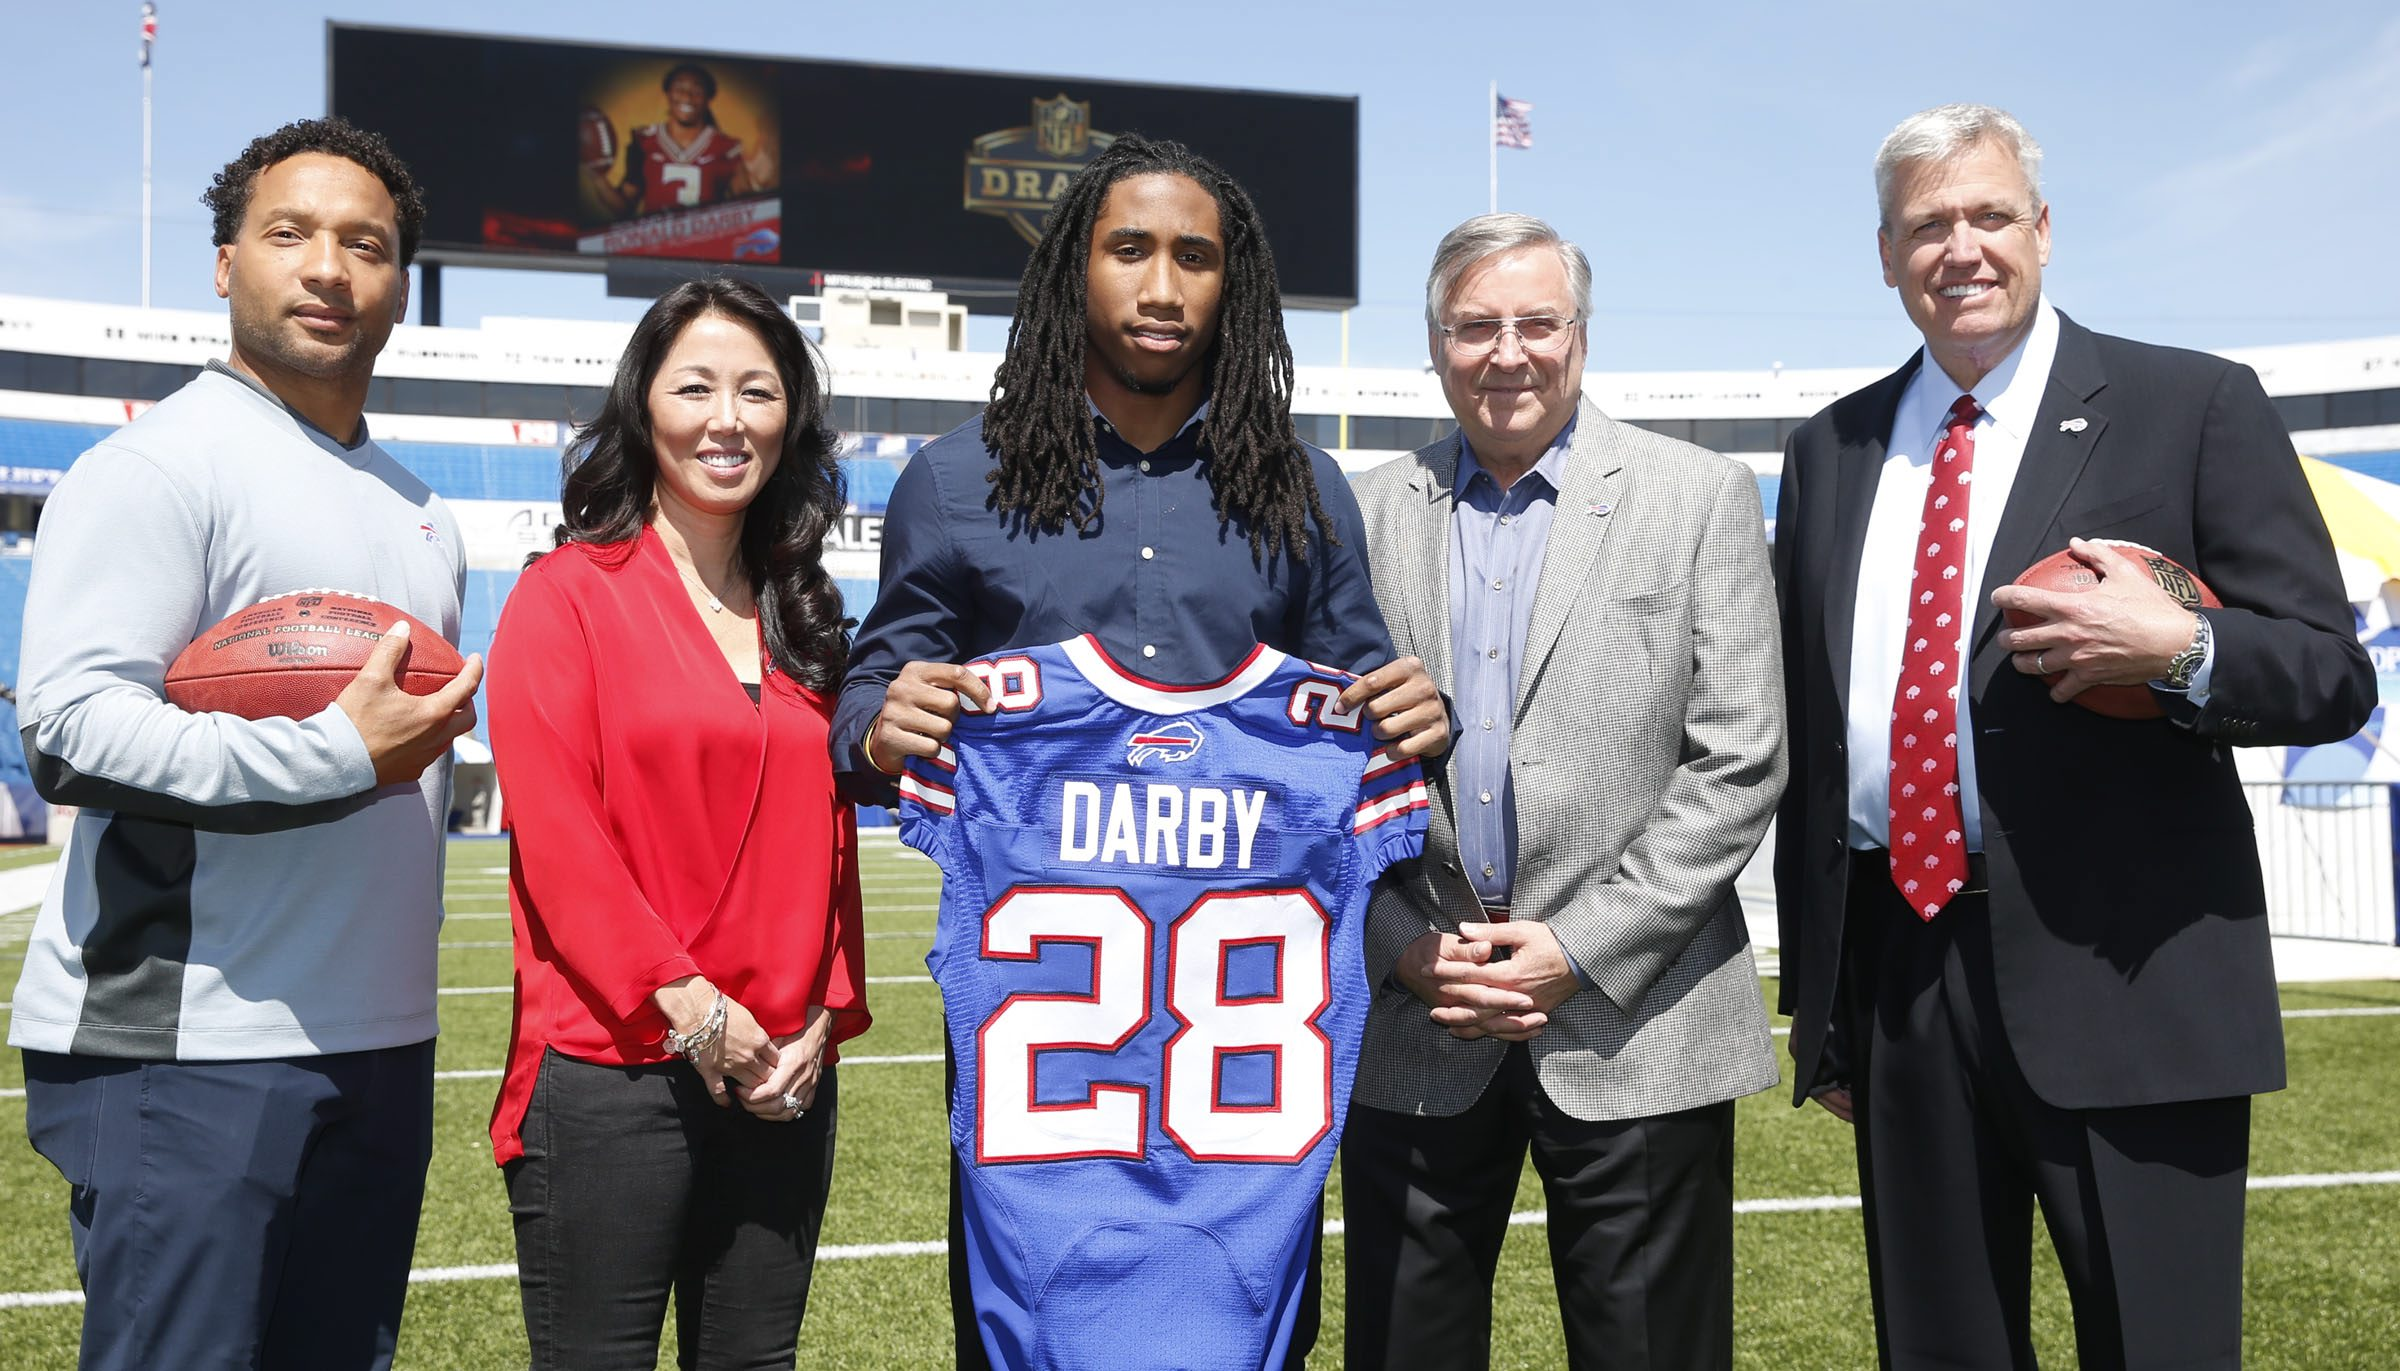 After putting in a standout rookie season, Ronald Darby has one of the contracts that the Bills -- and owners Terry and Kim Pegula, GM Doug Whaley and coach Rex Ryan -- have to be smiling about. (Harry Scull Jr./Buffalo News)